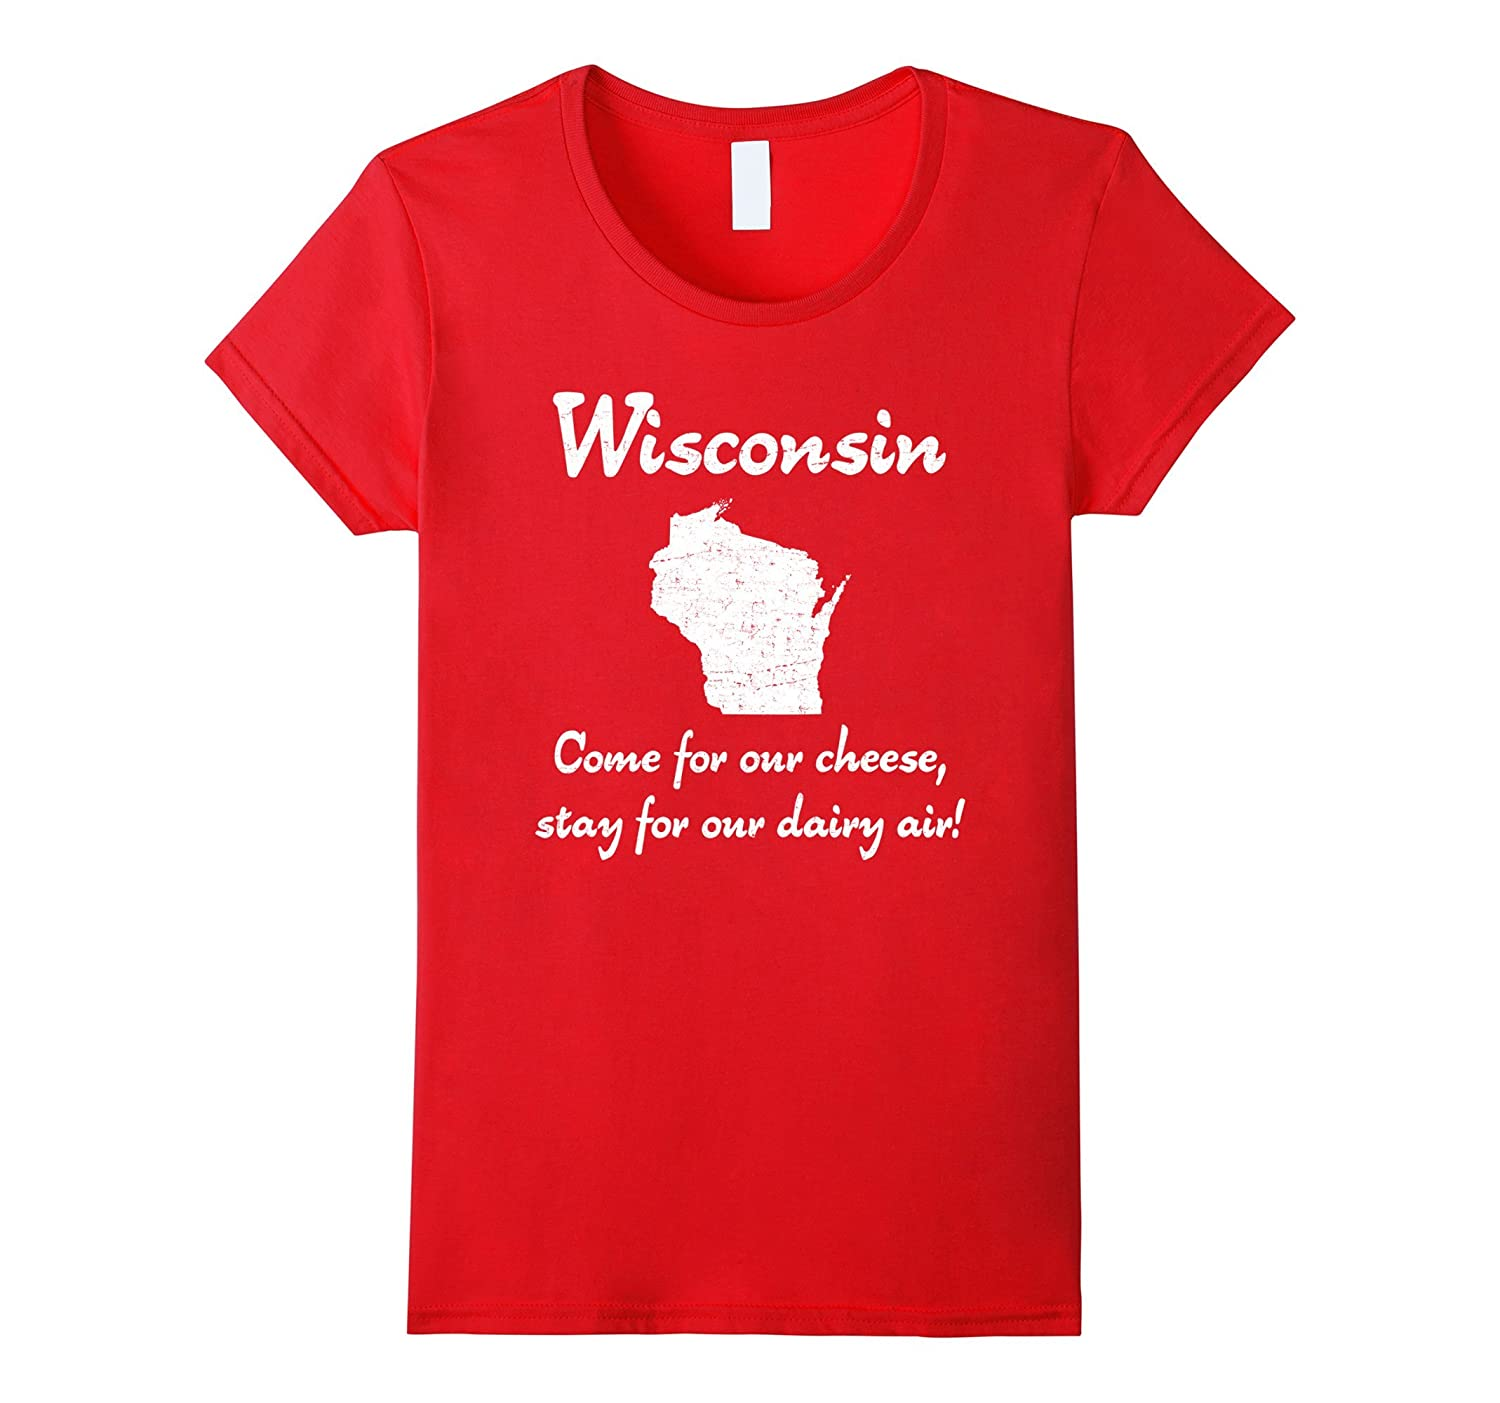 Wisconsin Come for our cheese stay for our dairy air t-shirt